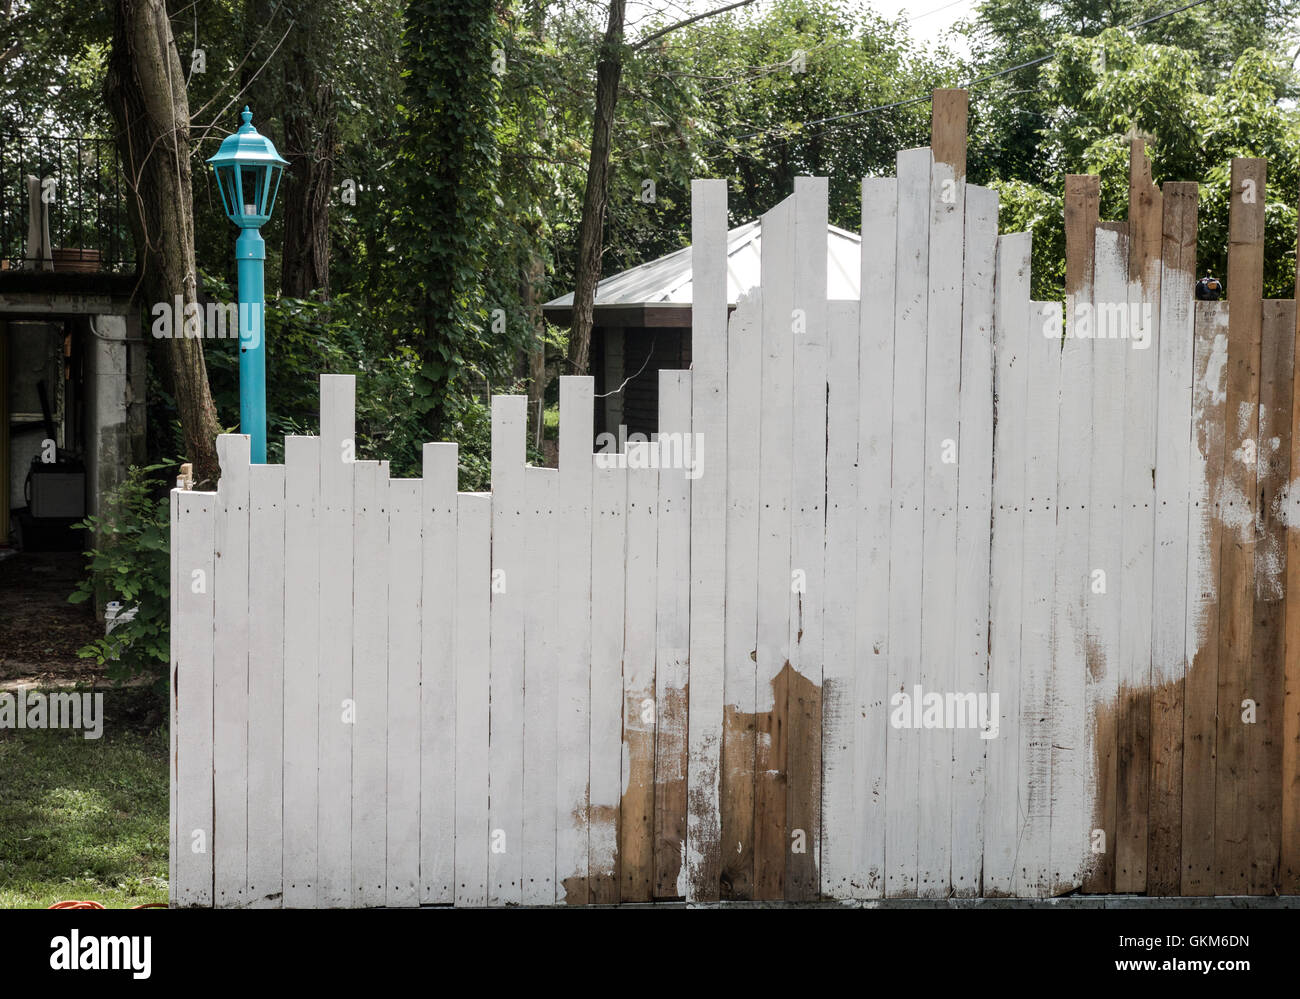 Wood outdoor lamp post - Uneven Boards In A Fence Are Partially Whitewashed With A Lamp Post And Garden In